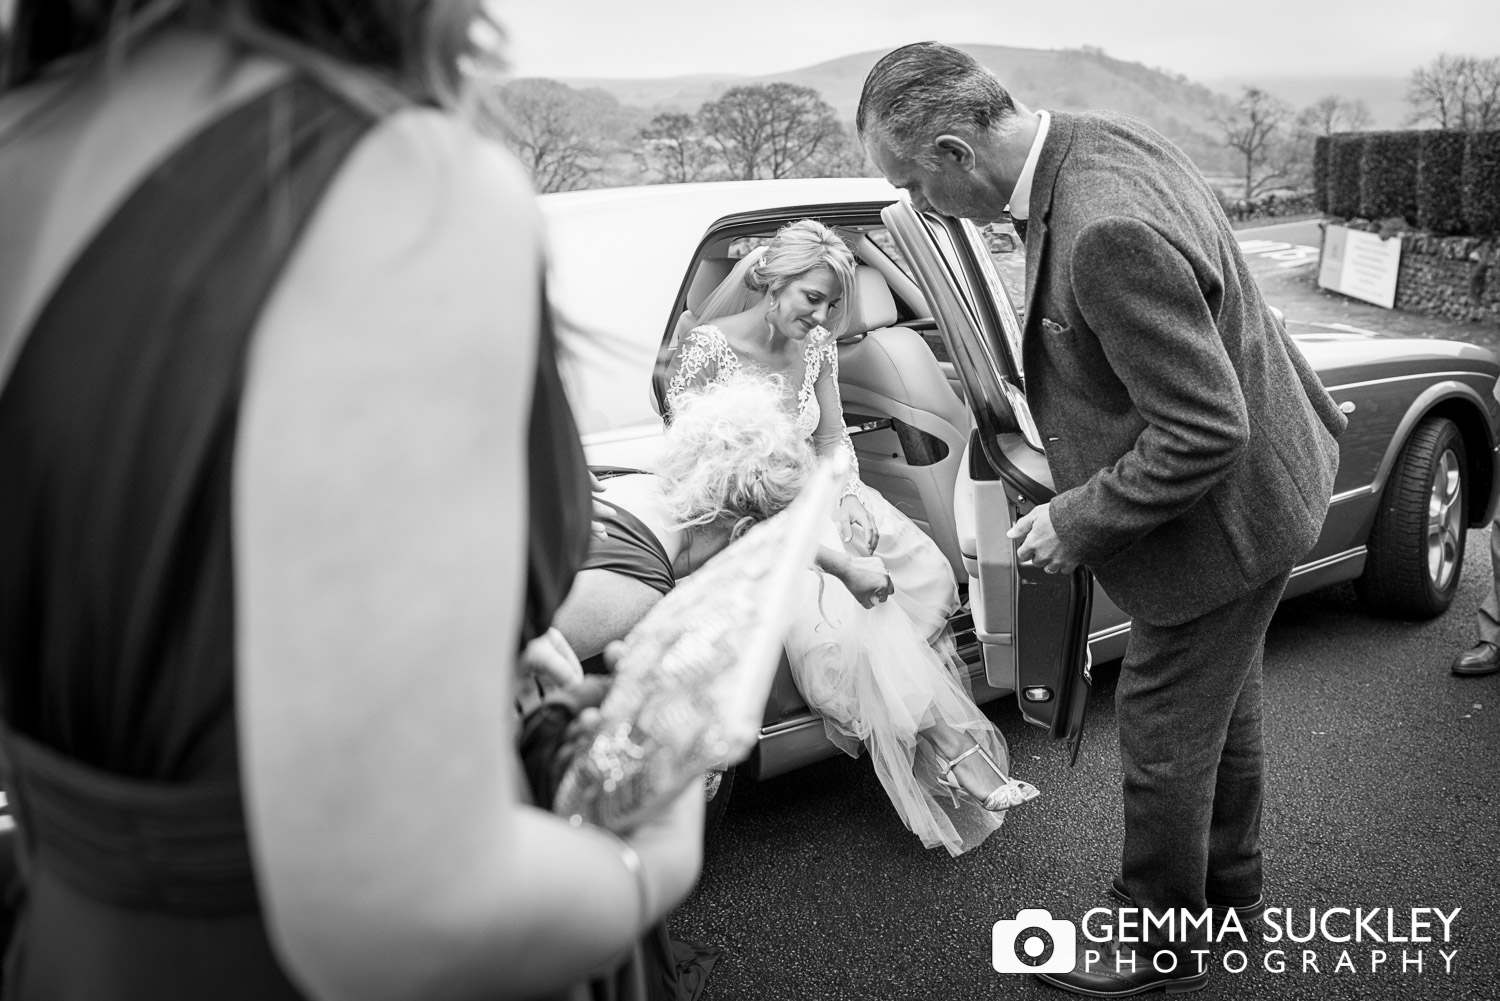 Bride getting out of the wedding car outside The Devonshire Fell in Burnsall